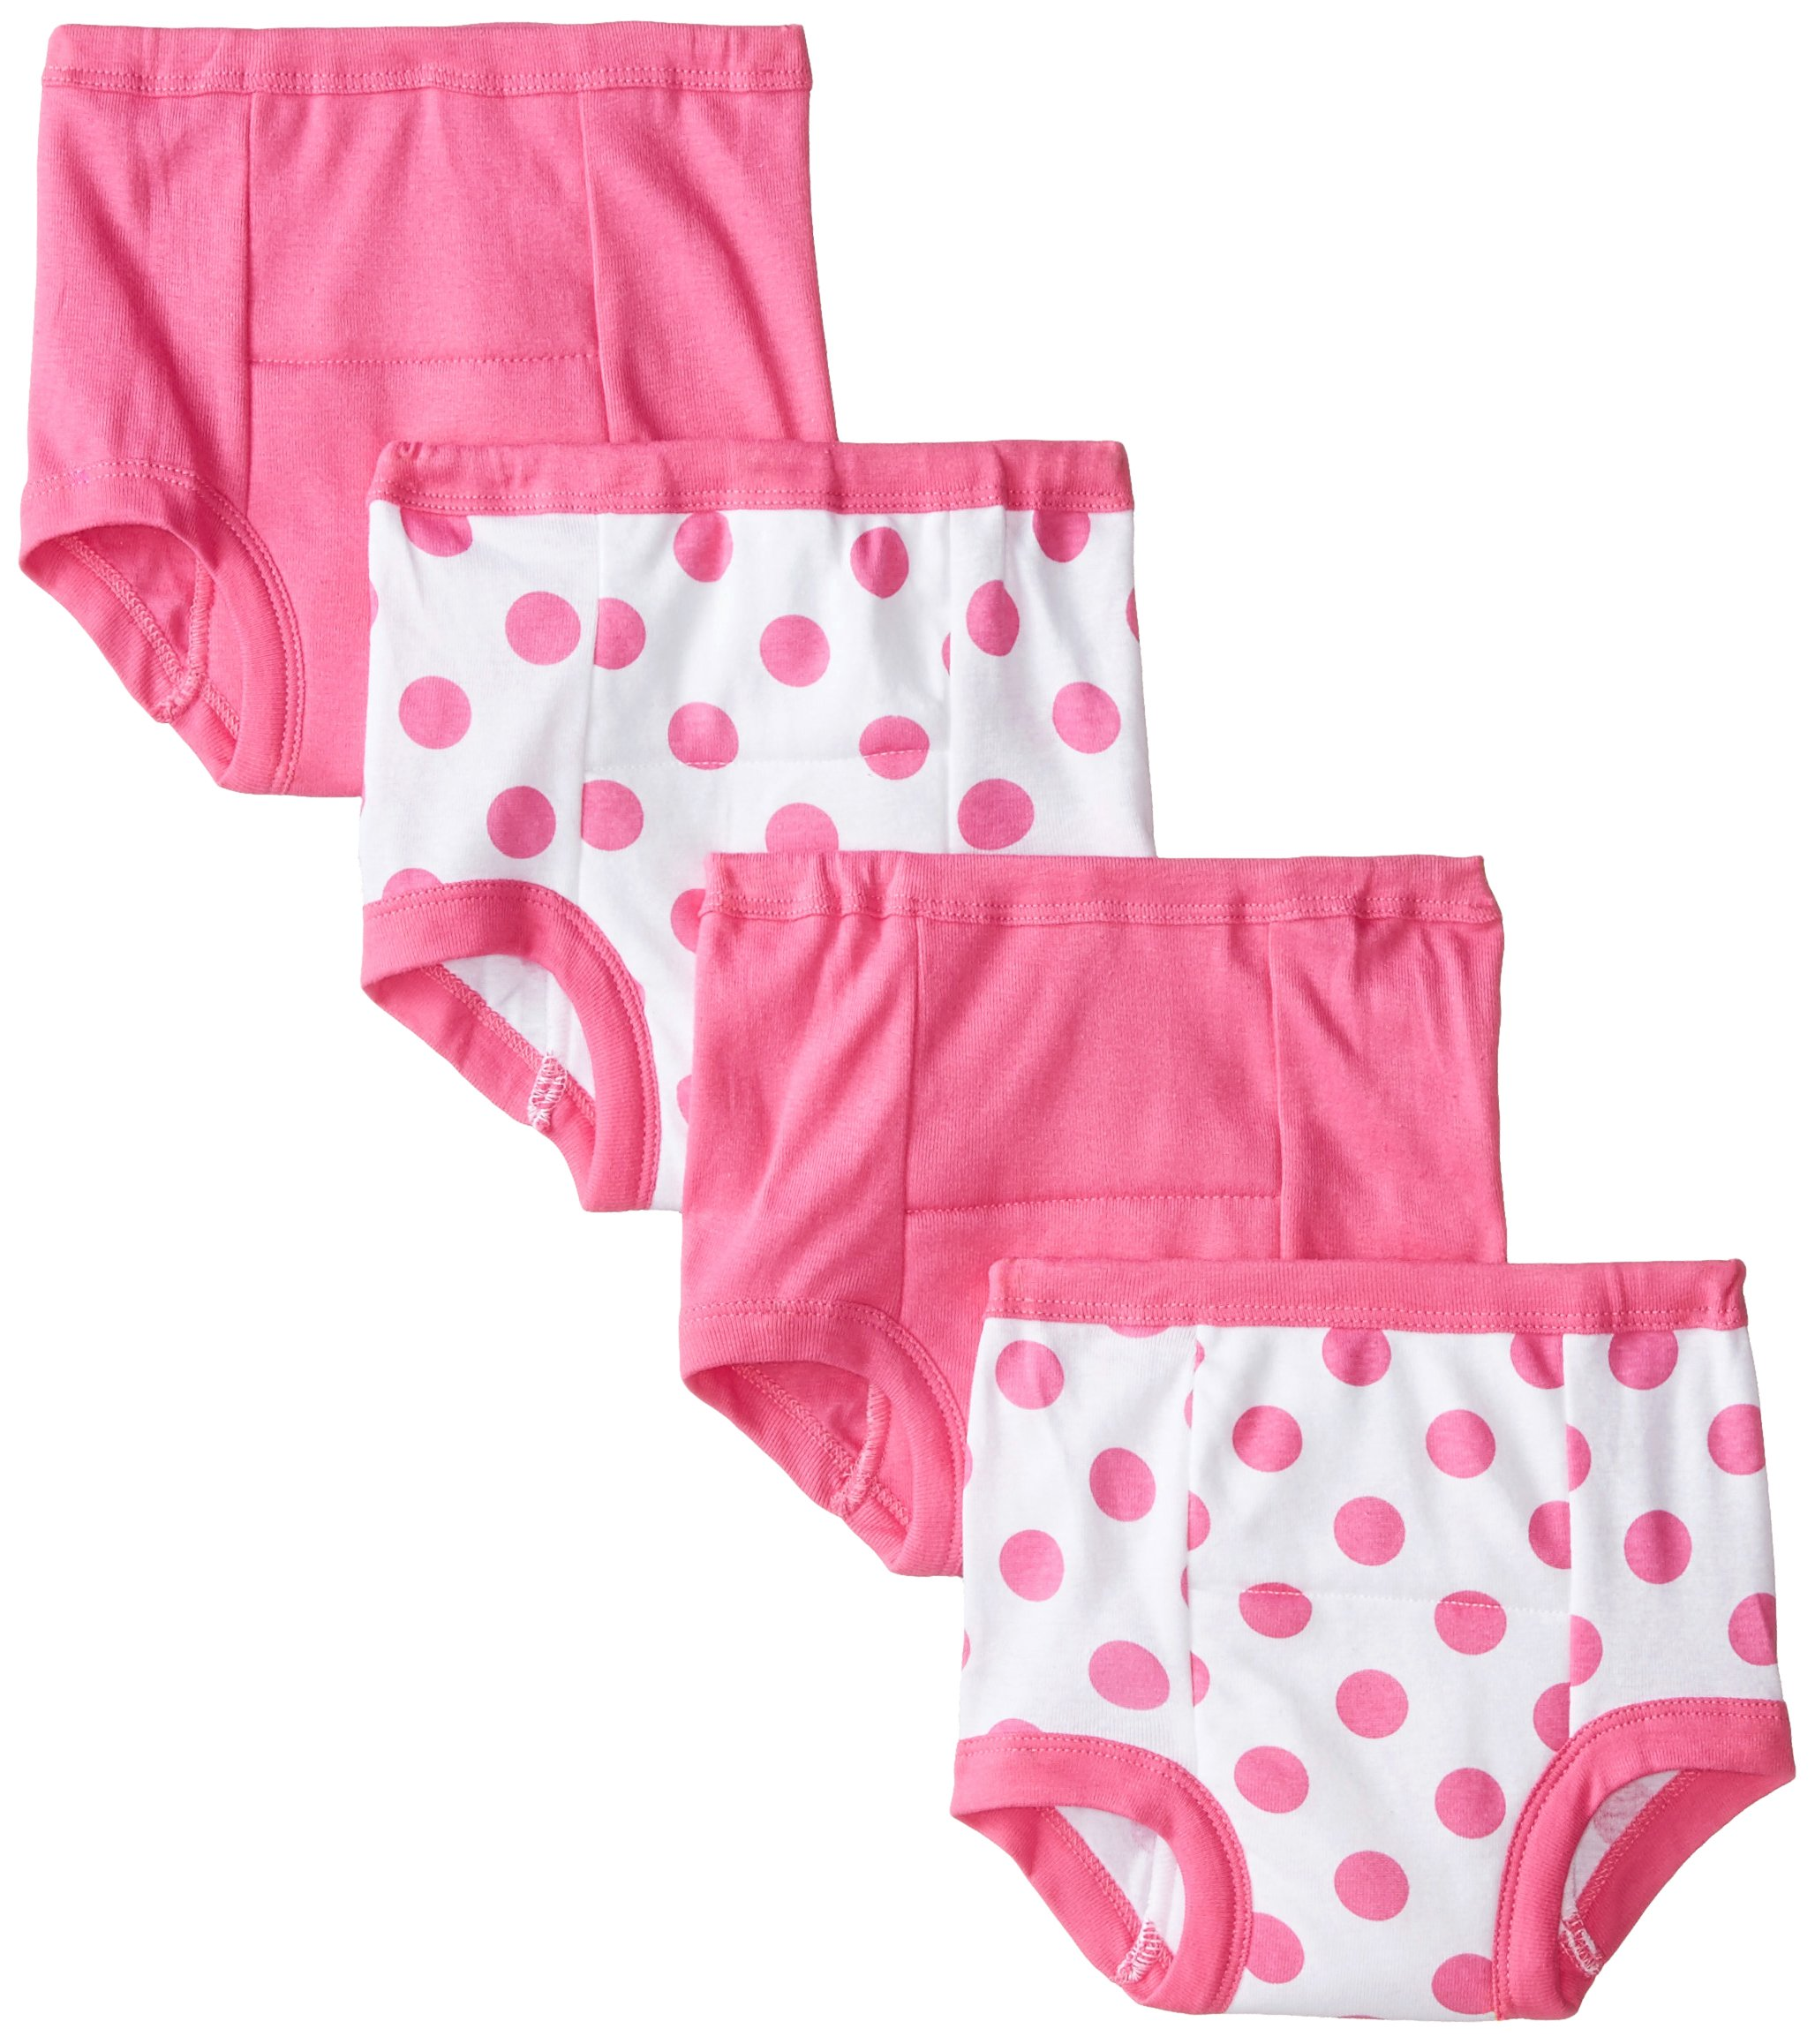 Gerber Little Girls' 4 Pack Training Pant